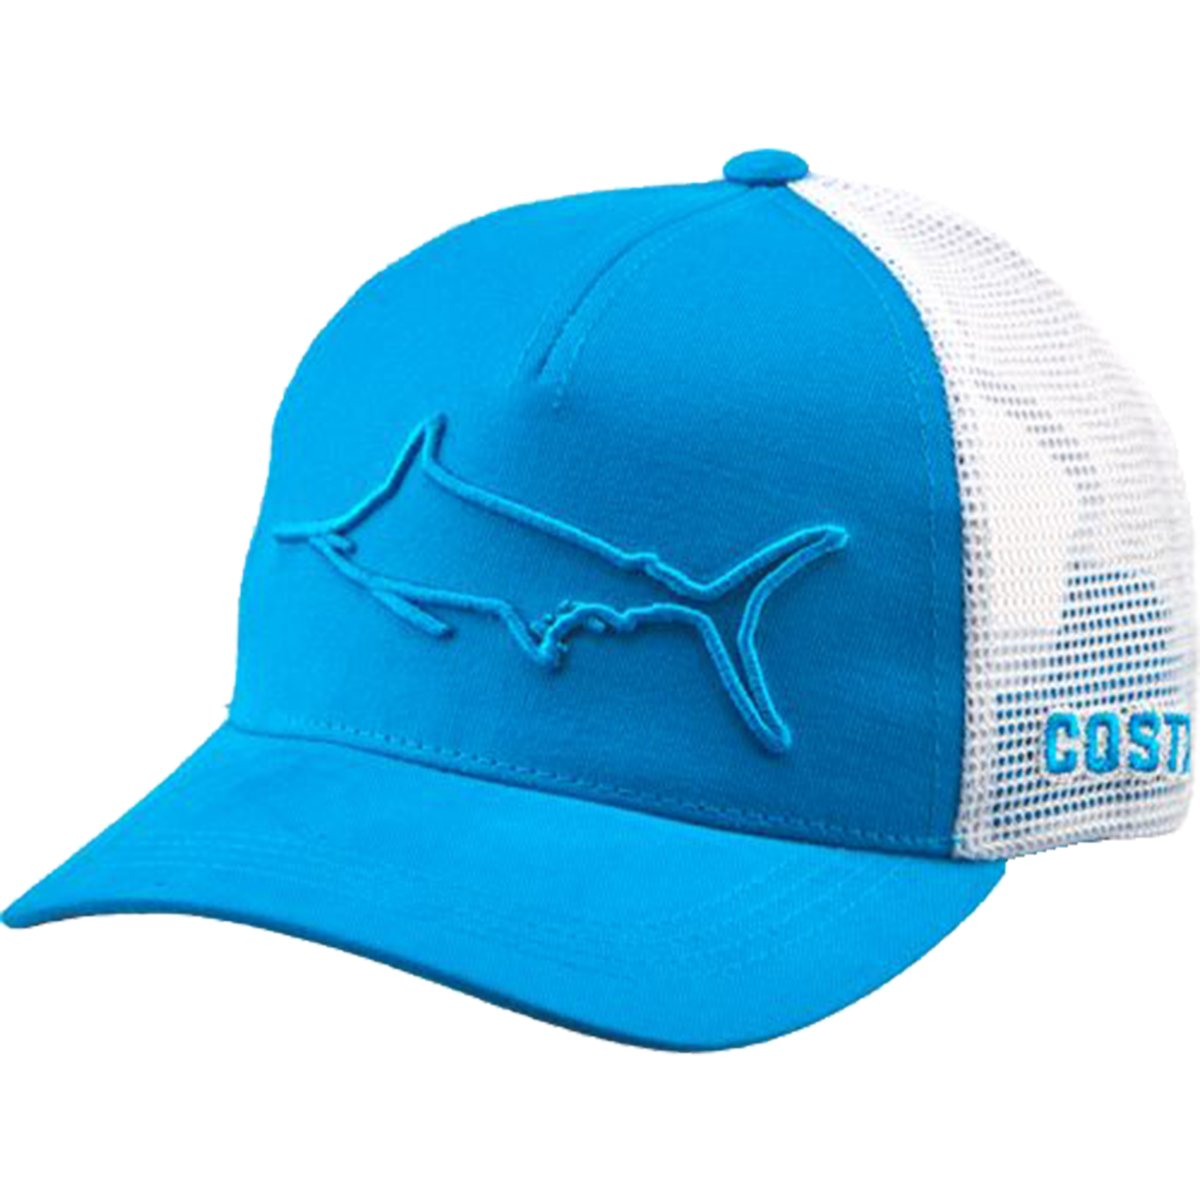 0d866956cc8af ... coupon amazon costa del mar stealth marlin trucker hat costa blue one  size fits all sports ...